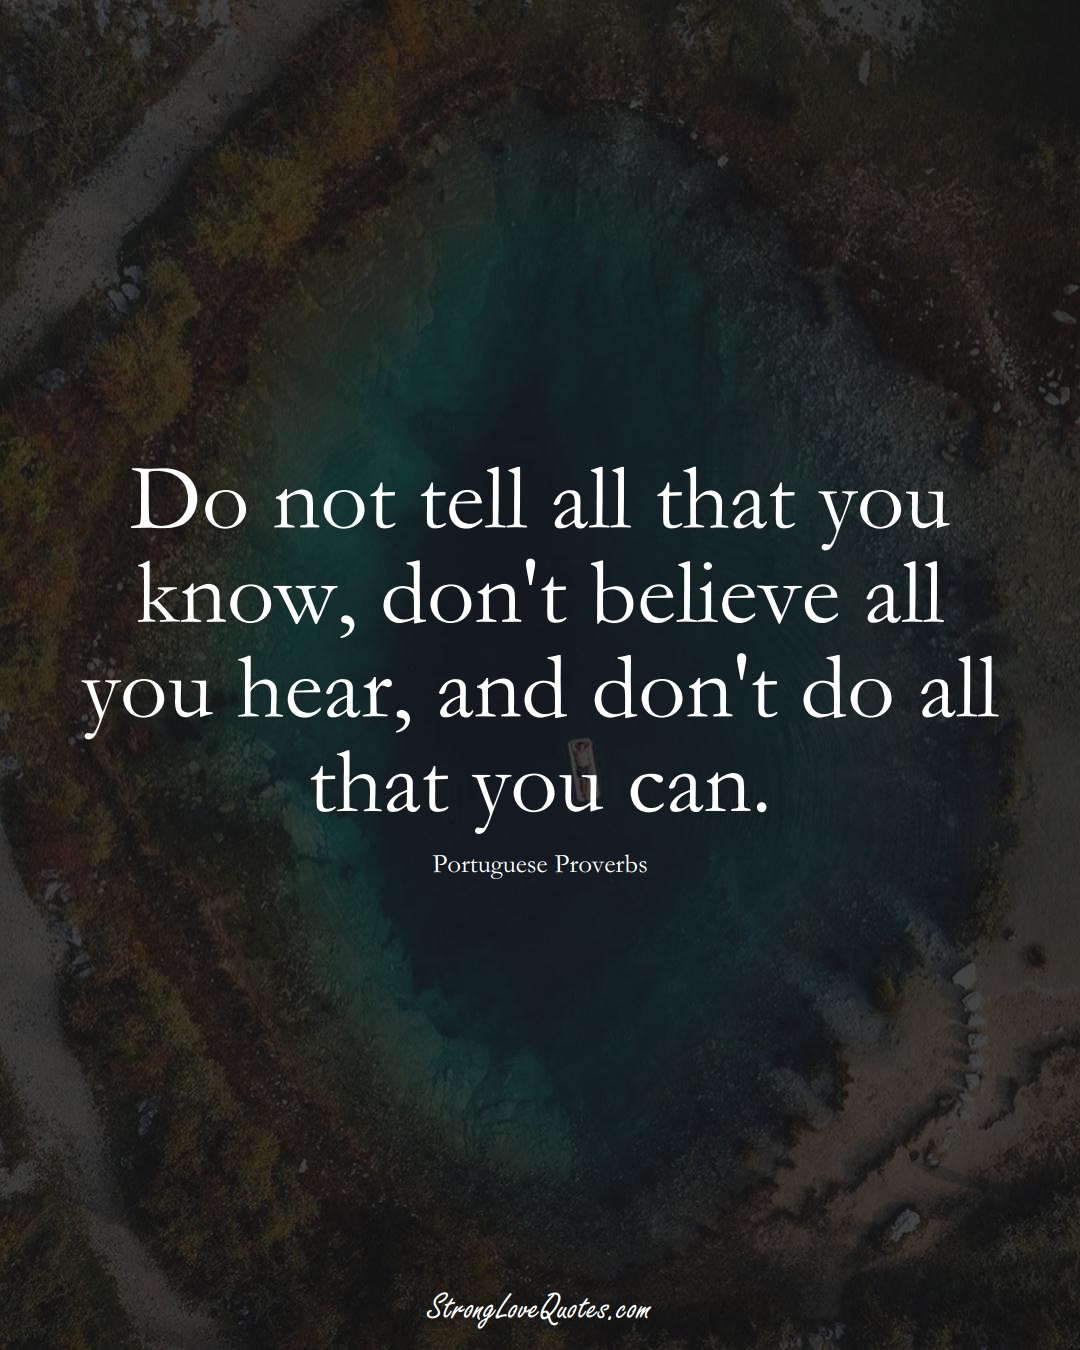 Do not tell all that you know, don't believe all you hear, and don't do all that you can. (Portuguese Sayings);  #EuropeanSayings